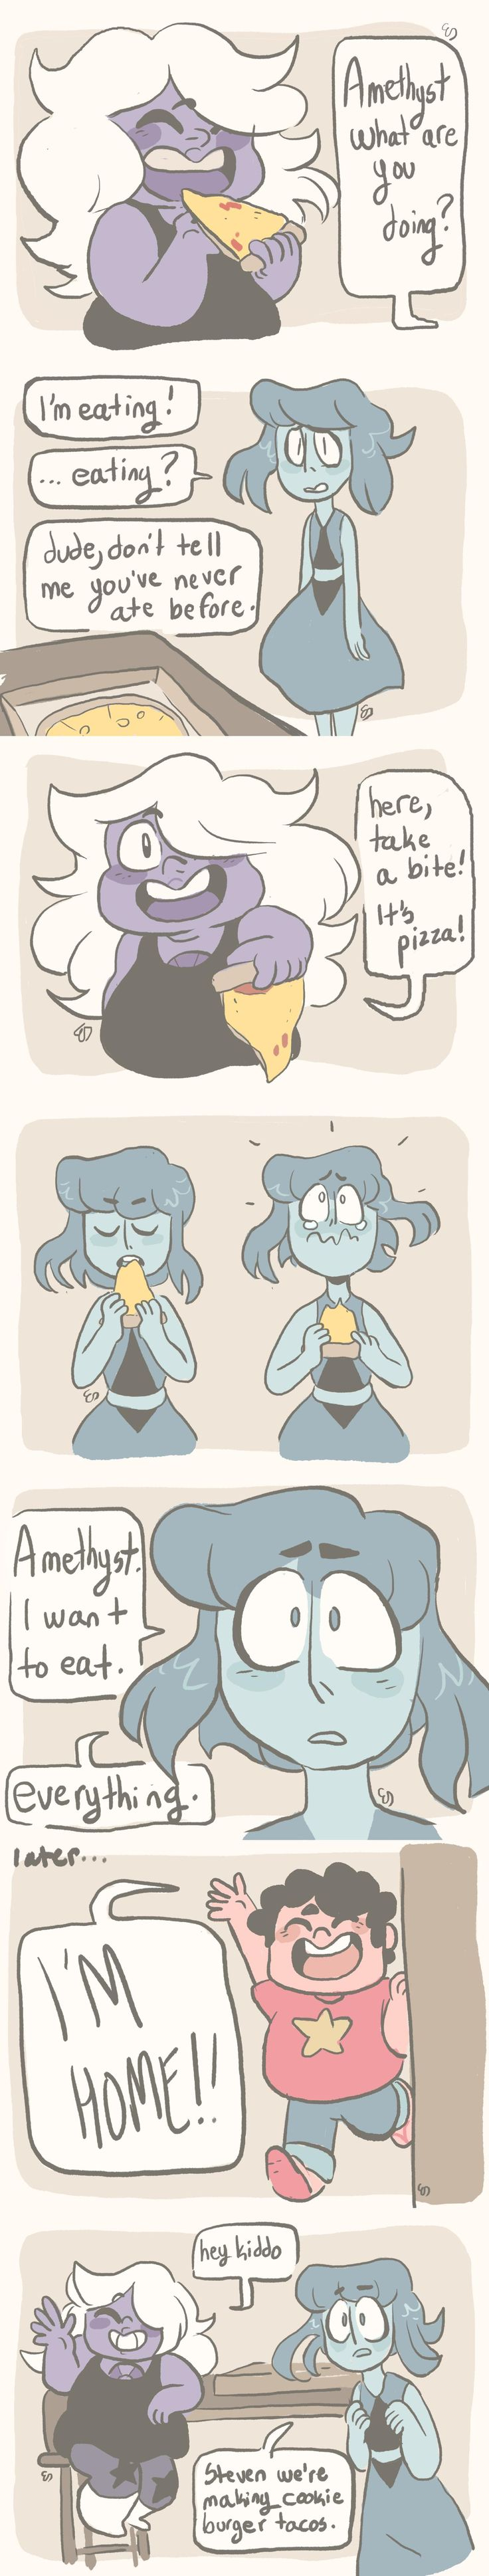 a quick silly comic but i want lapis to eat as much as amethyst and i want them to make gross combinations of foods and party and enjoy every minute of it - mushroomstairs